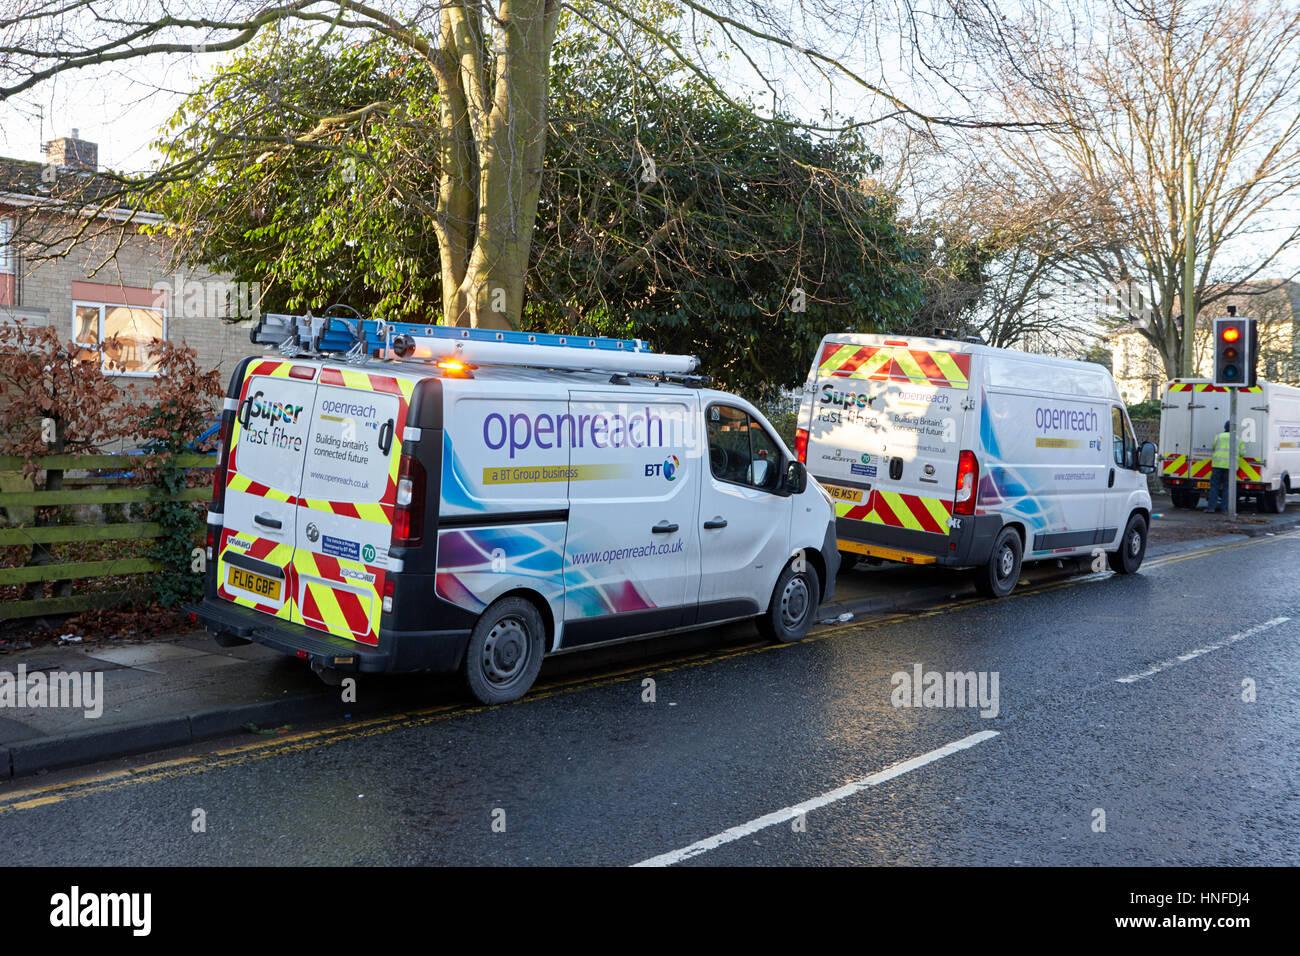 bt openreach vans parked by the roadside to fix a fault in the broadband network liverpool uk - Stock Image